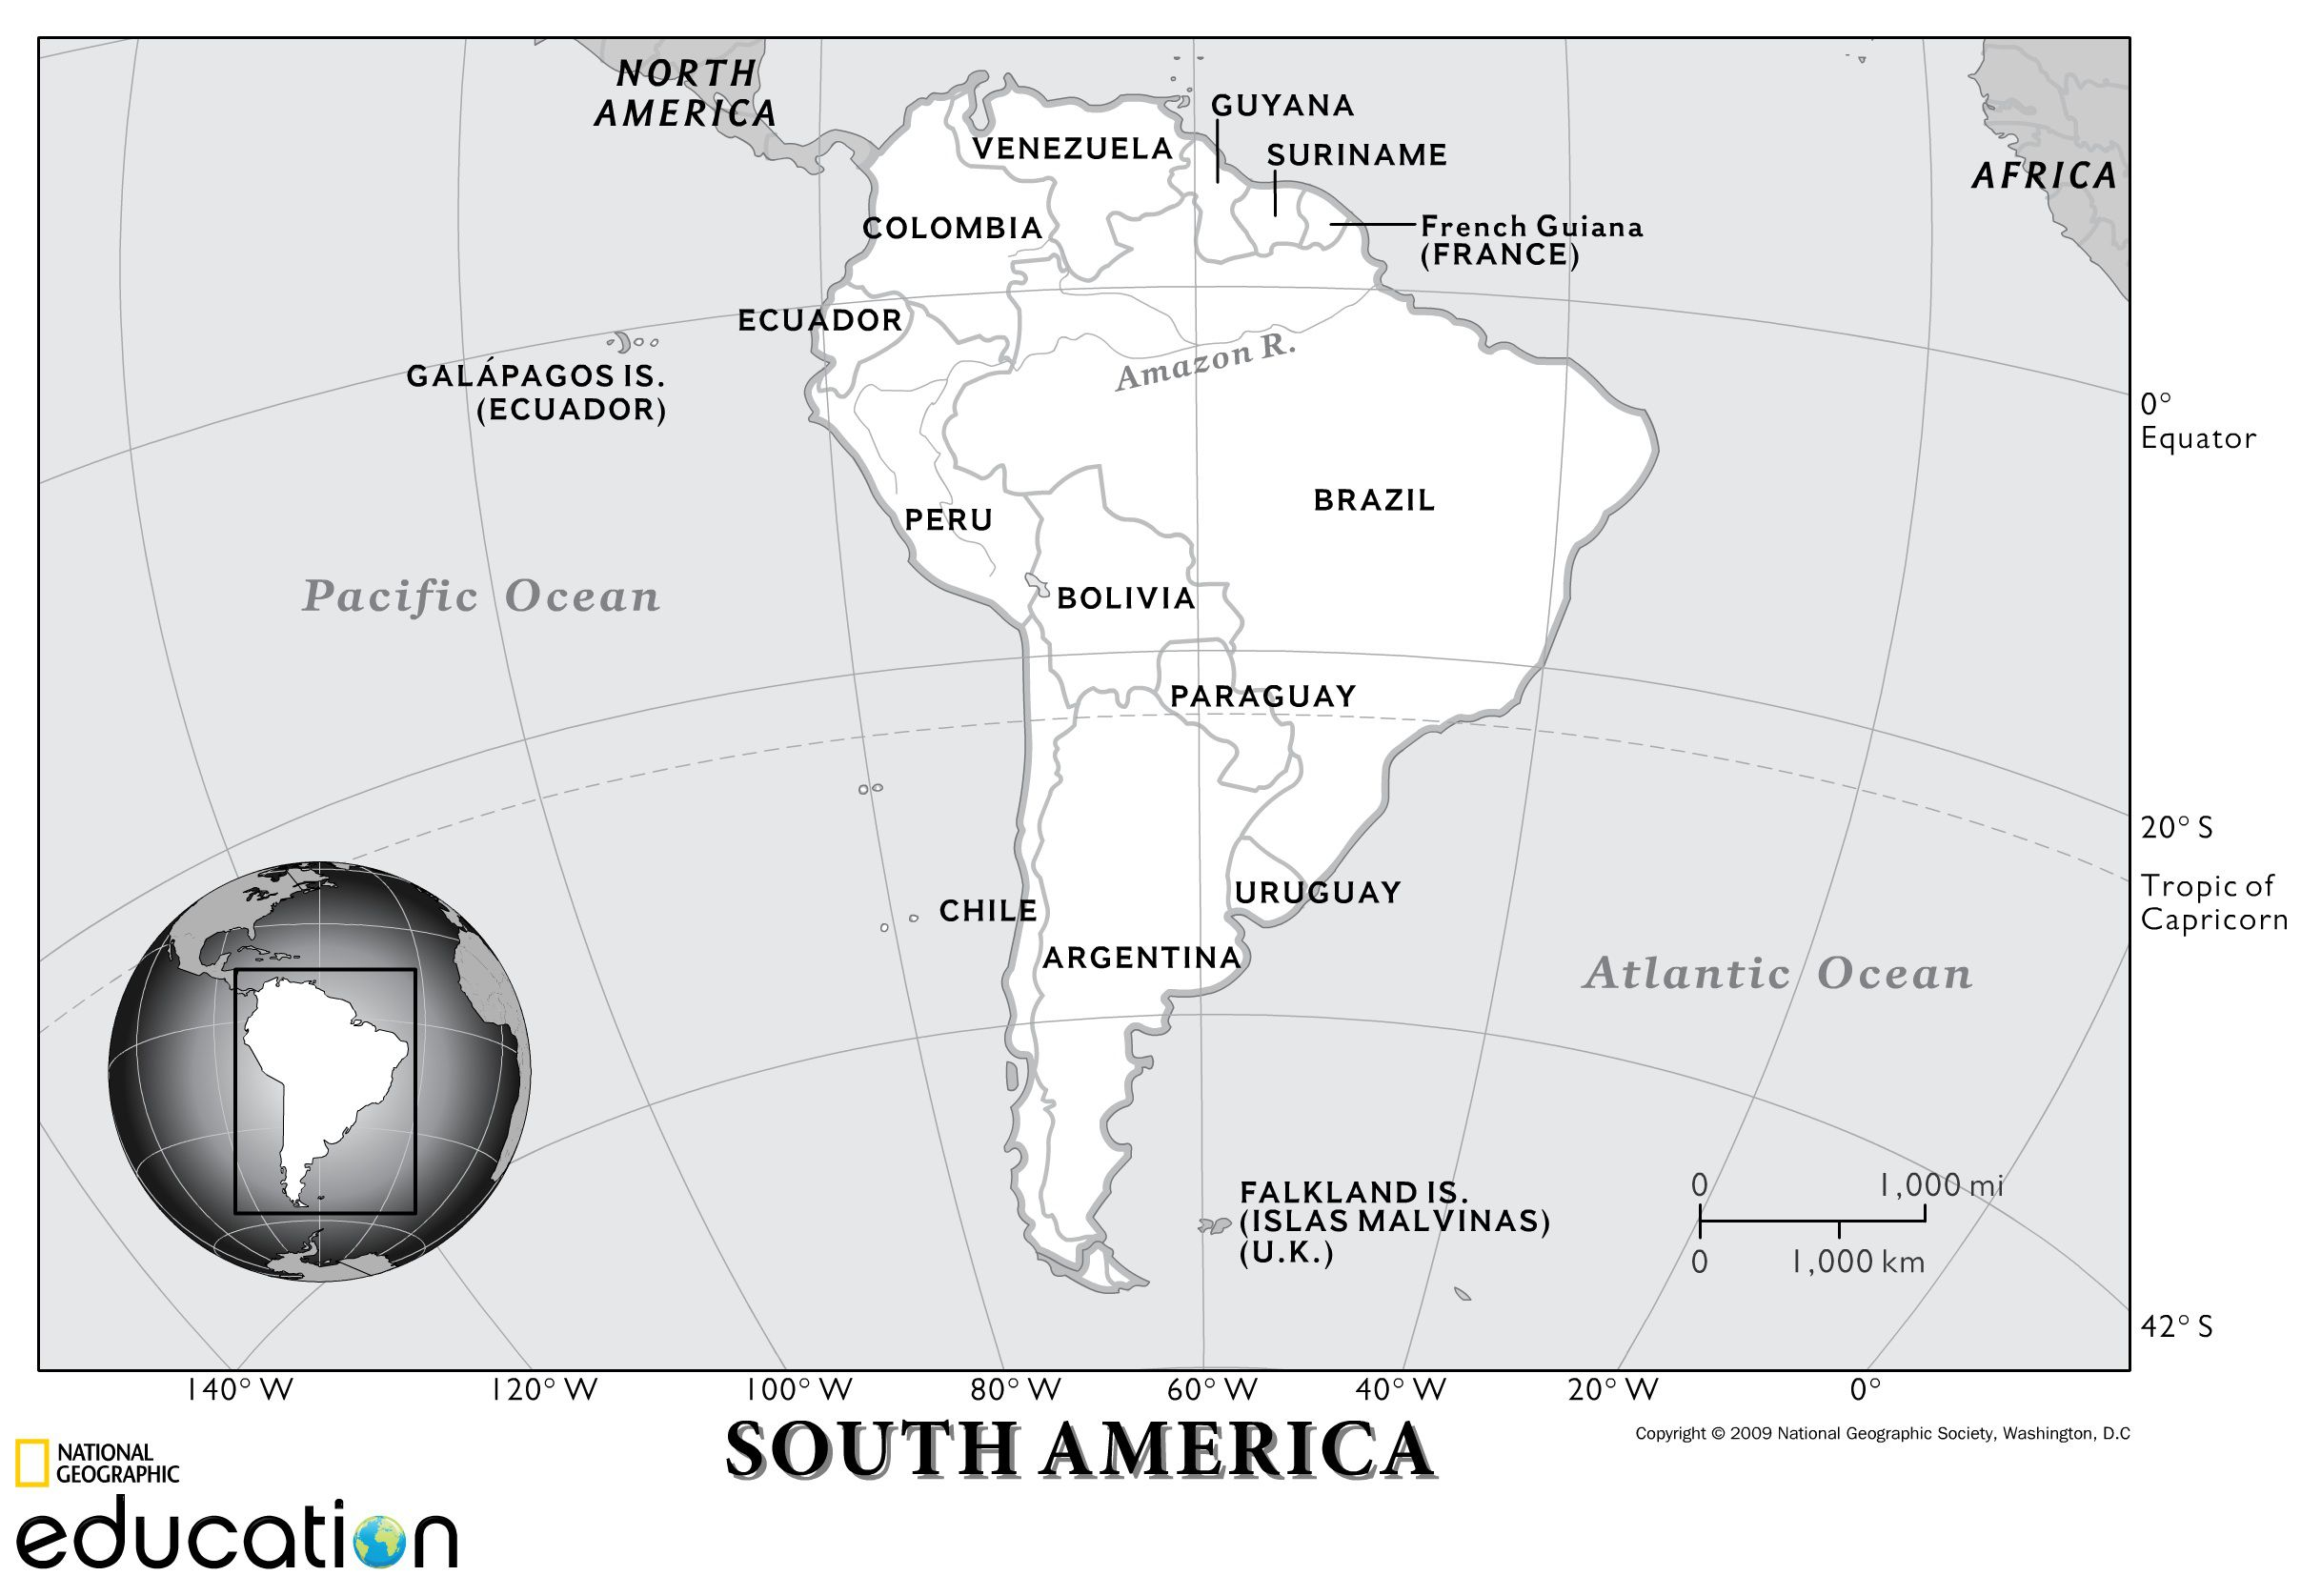 South America Human Geography National Geographic Society - Us-history-map-activities-answer-key-american-revolution